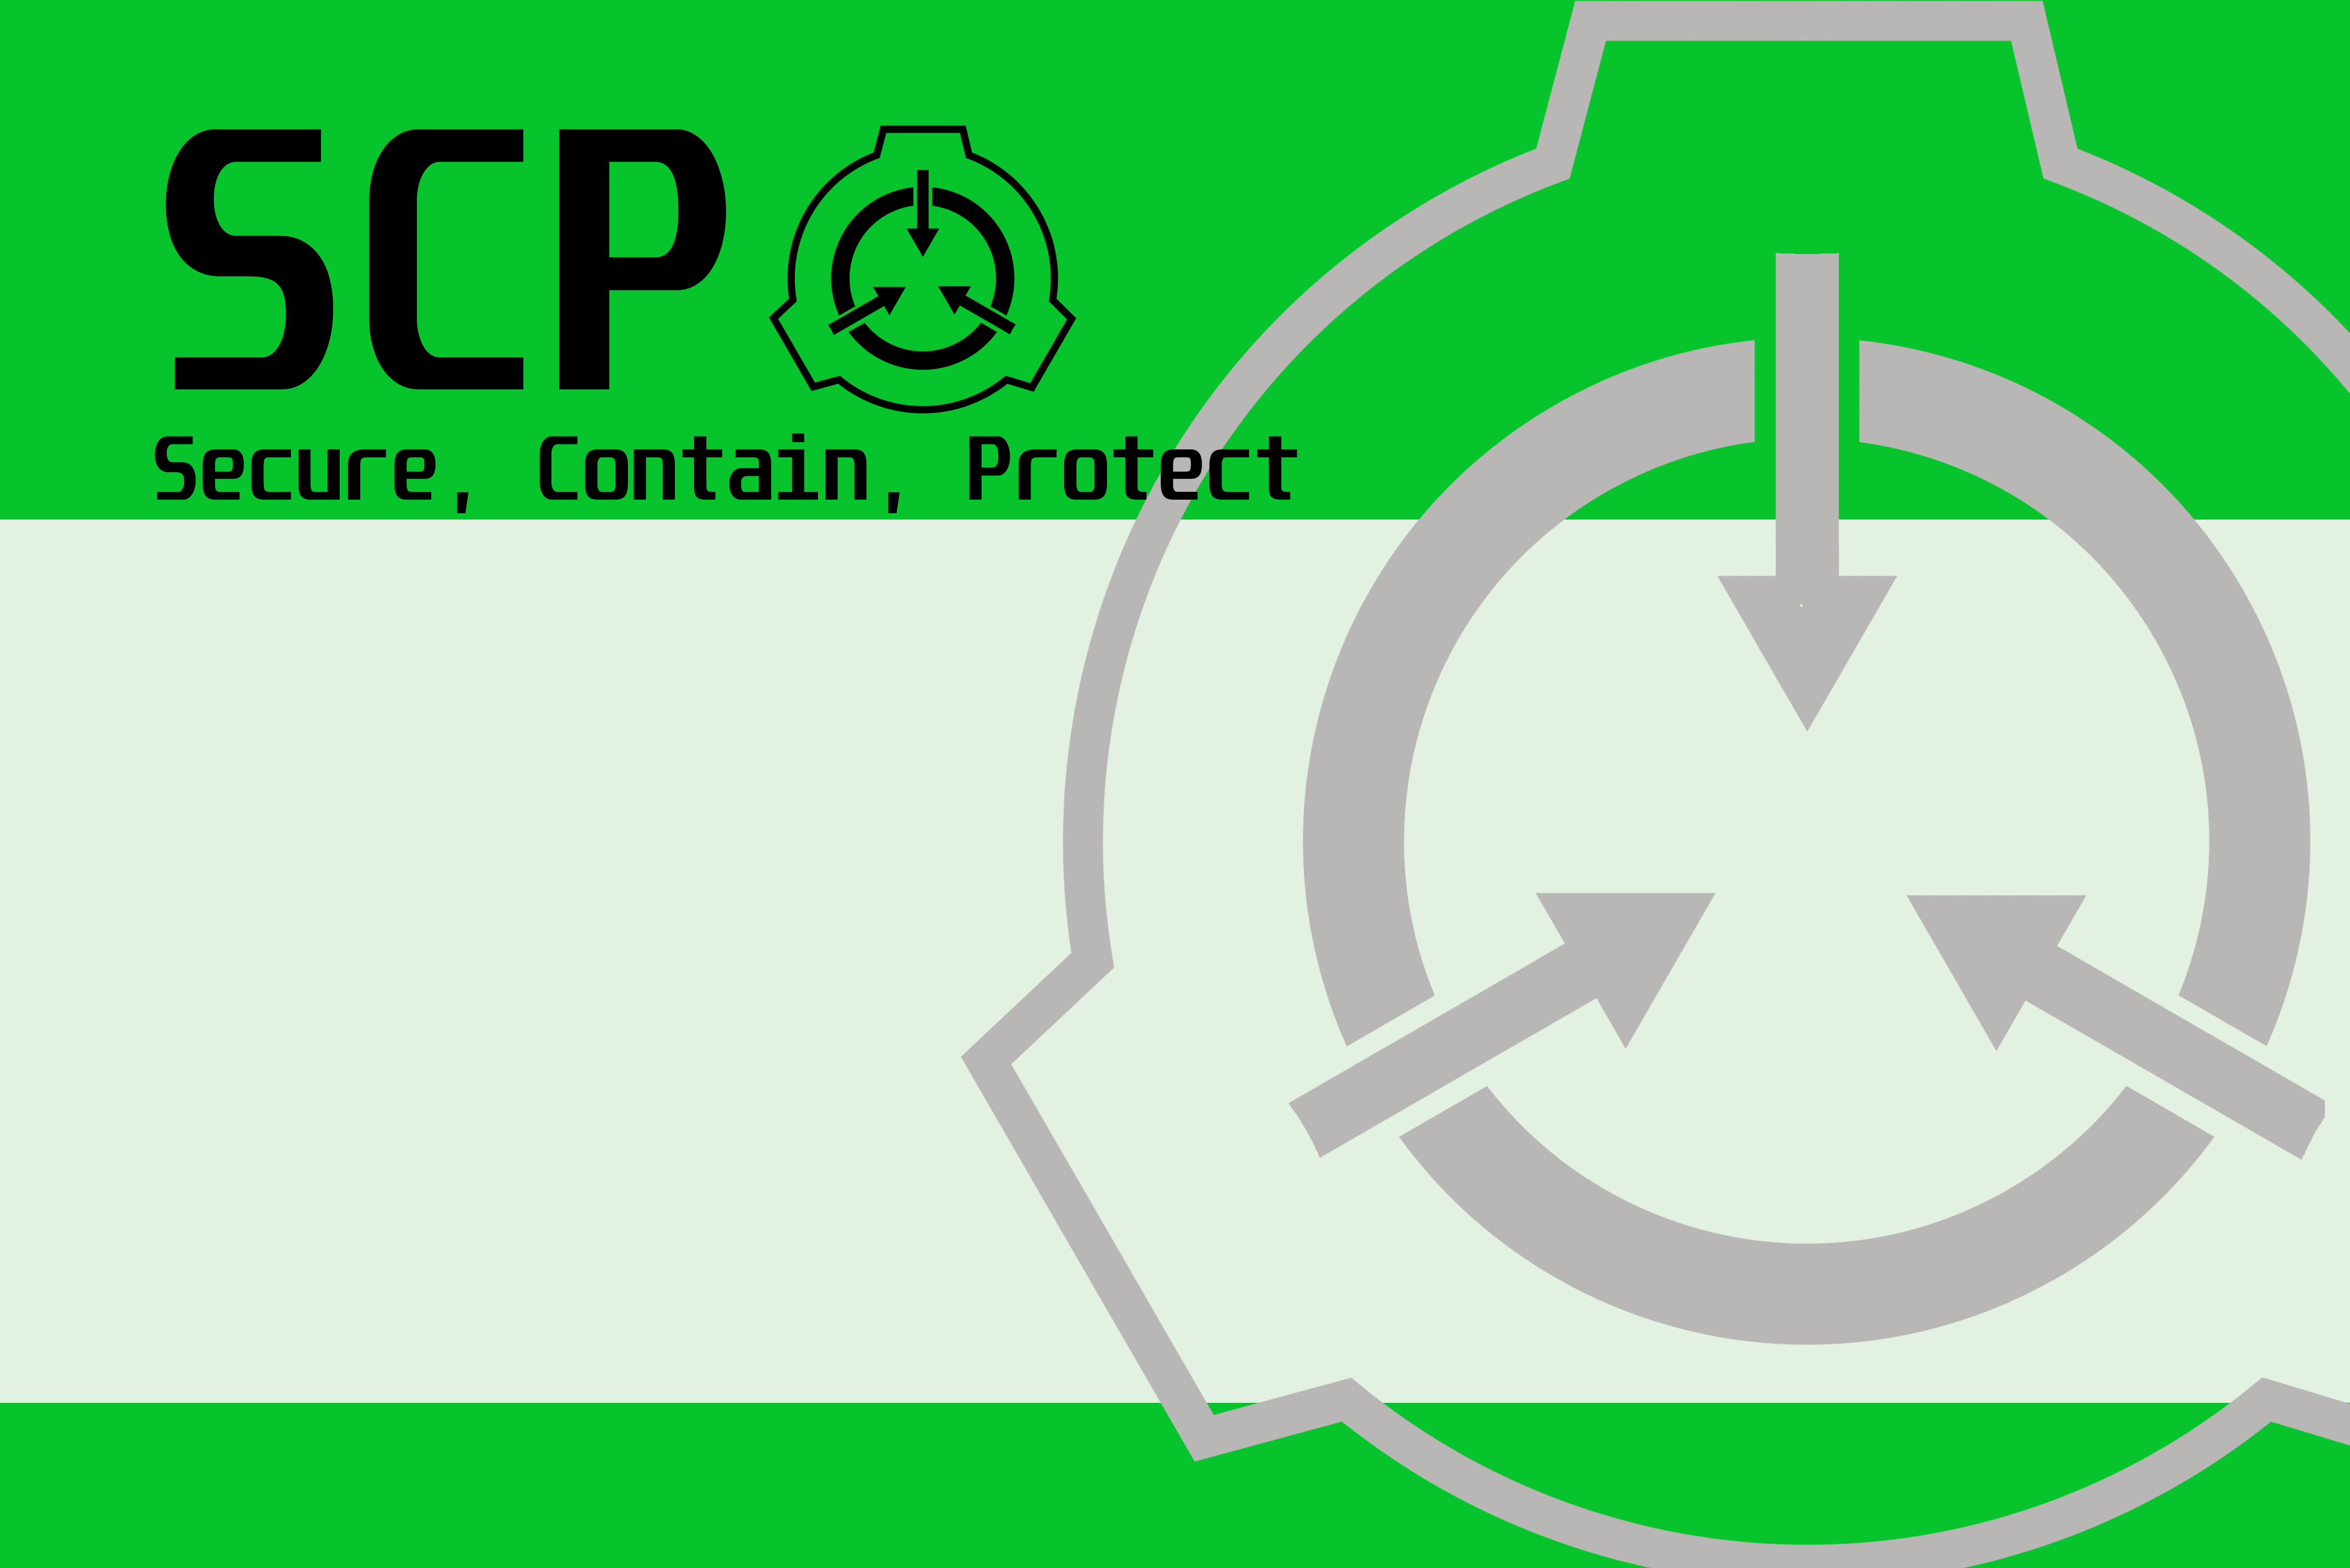 SCP-Ccard-Green-01.png